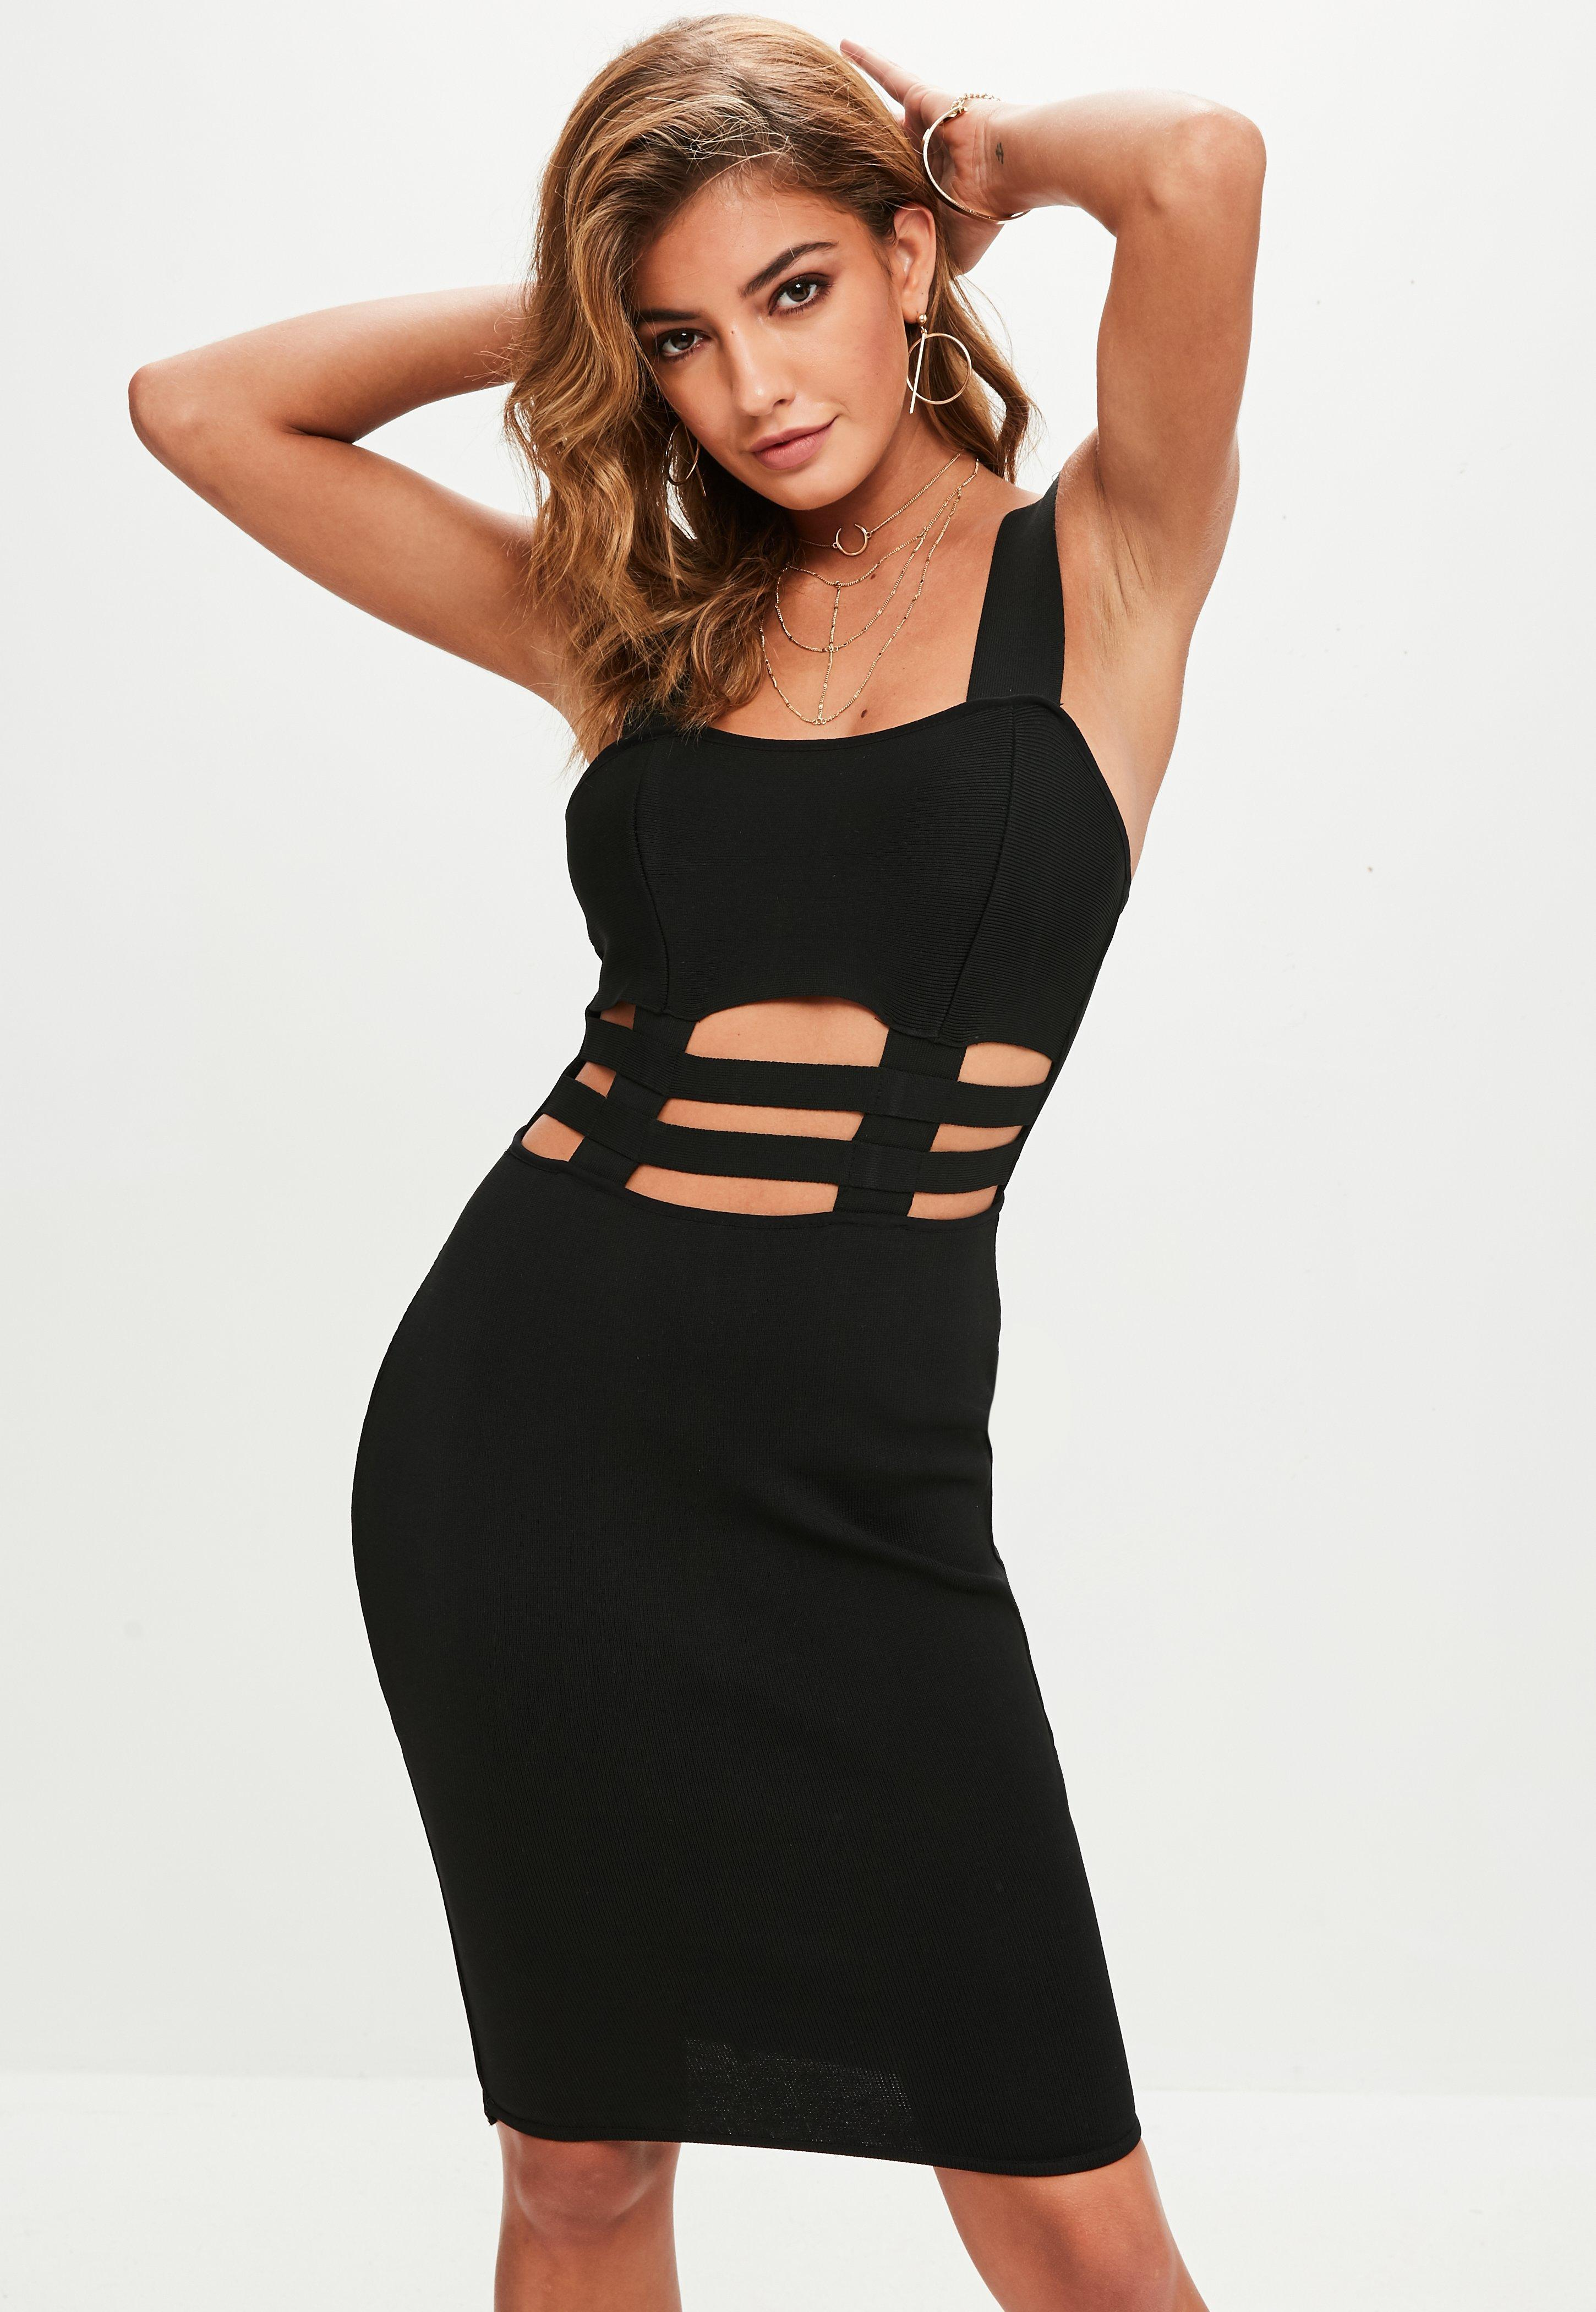 Missguided Black Vinyl Bustcup Strappy Bodycon Dress in